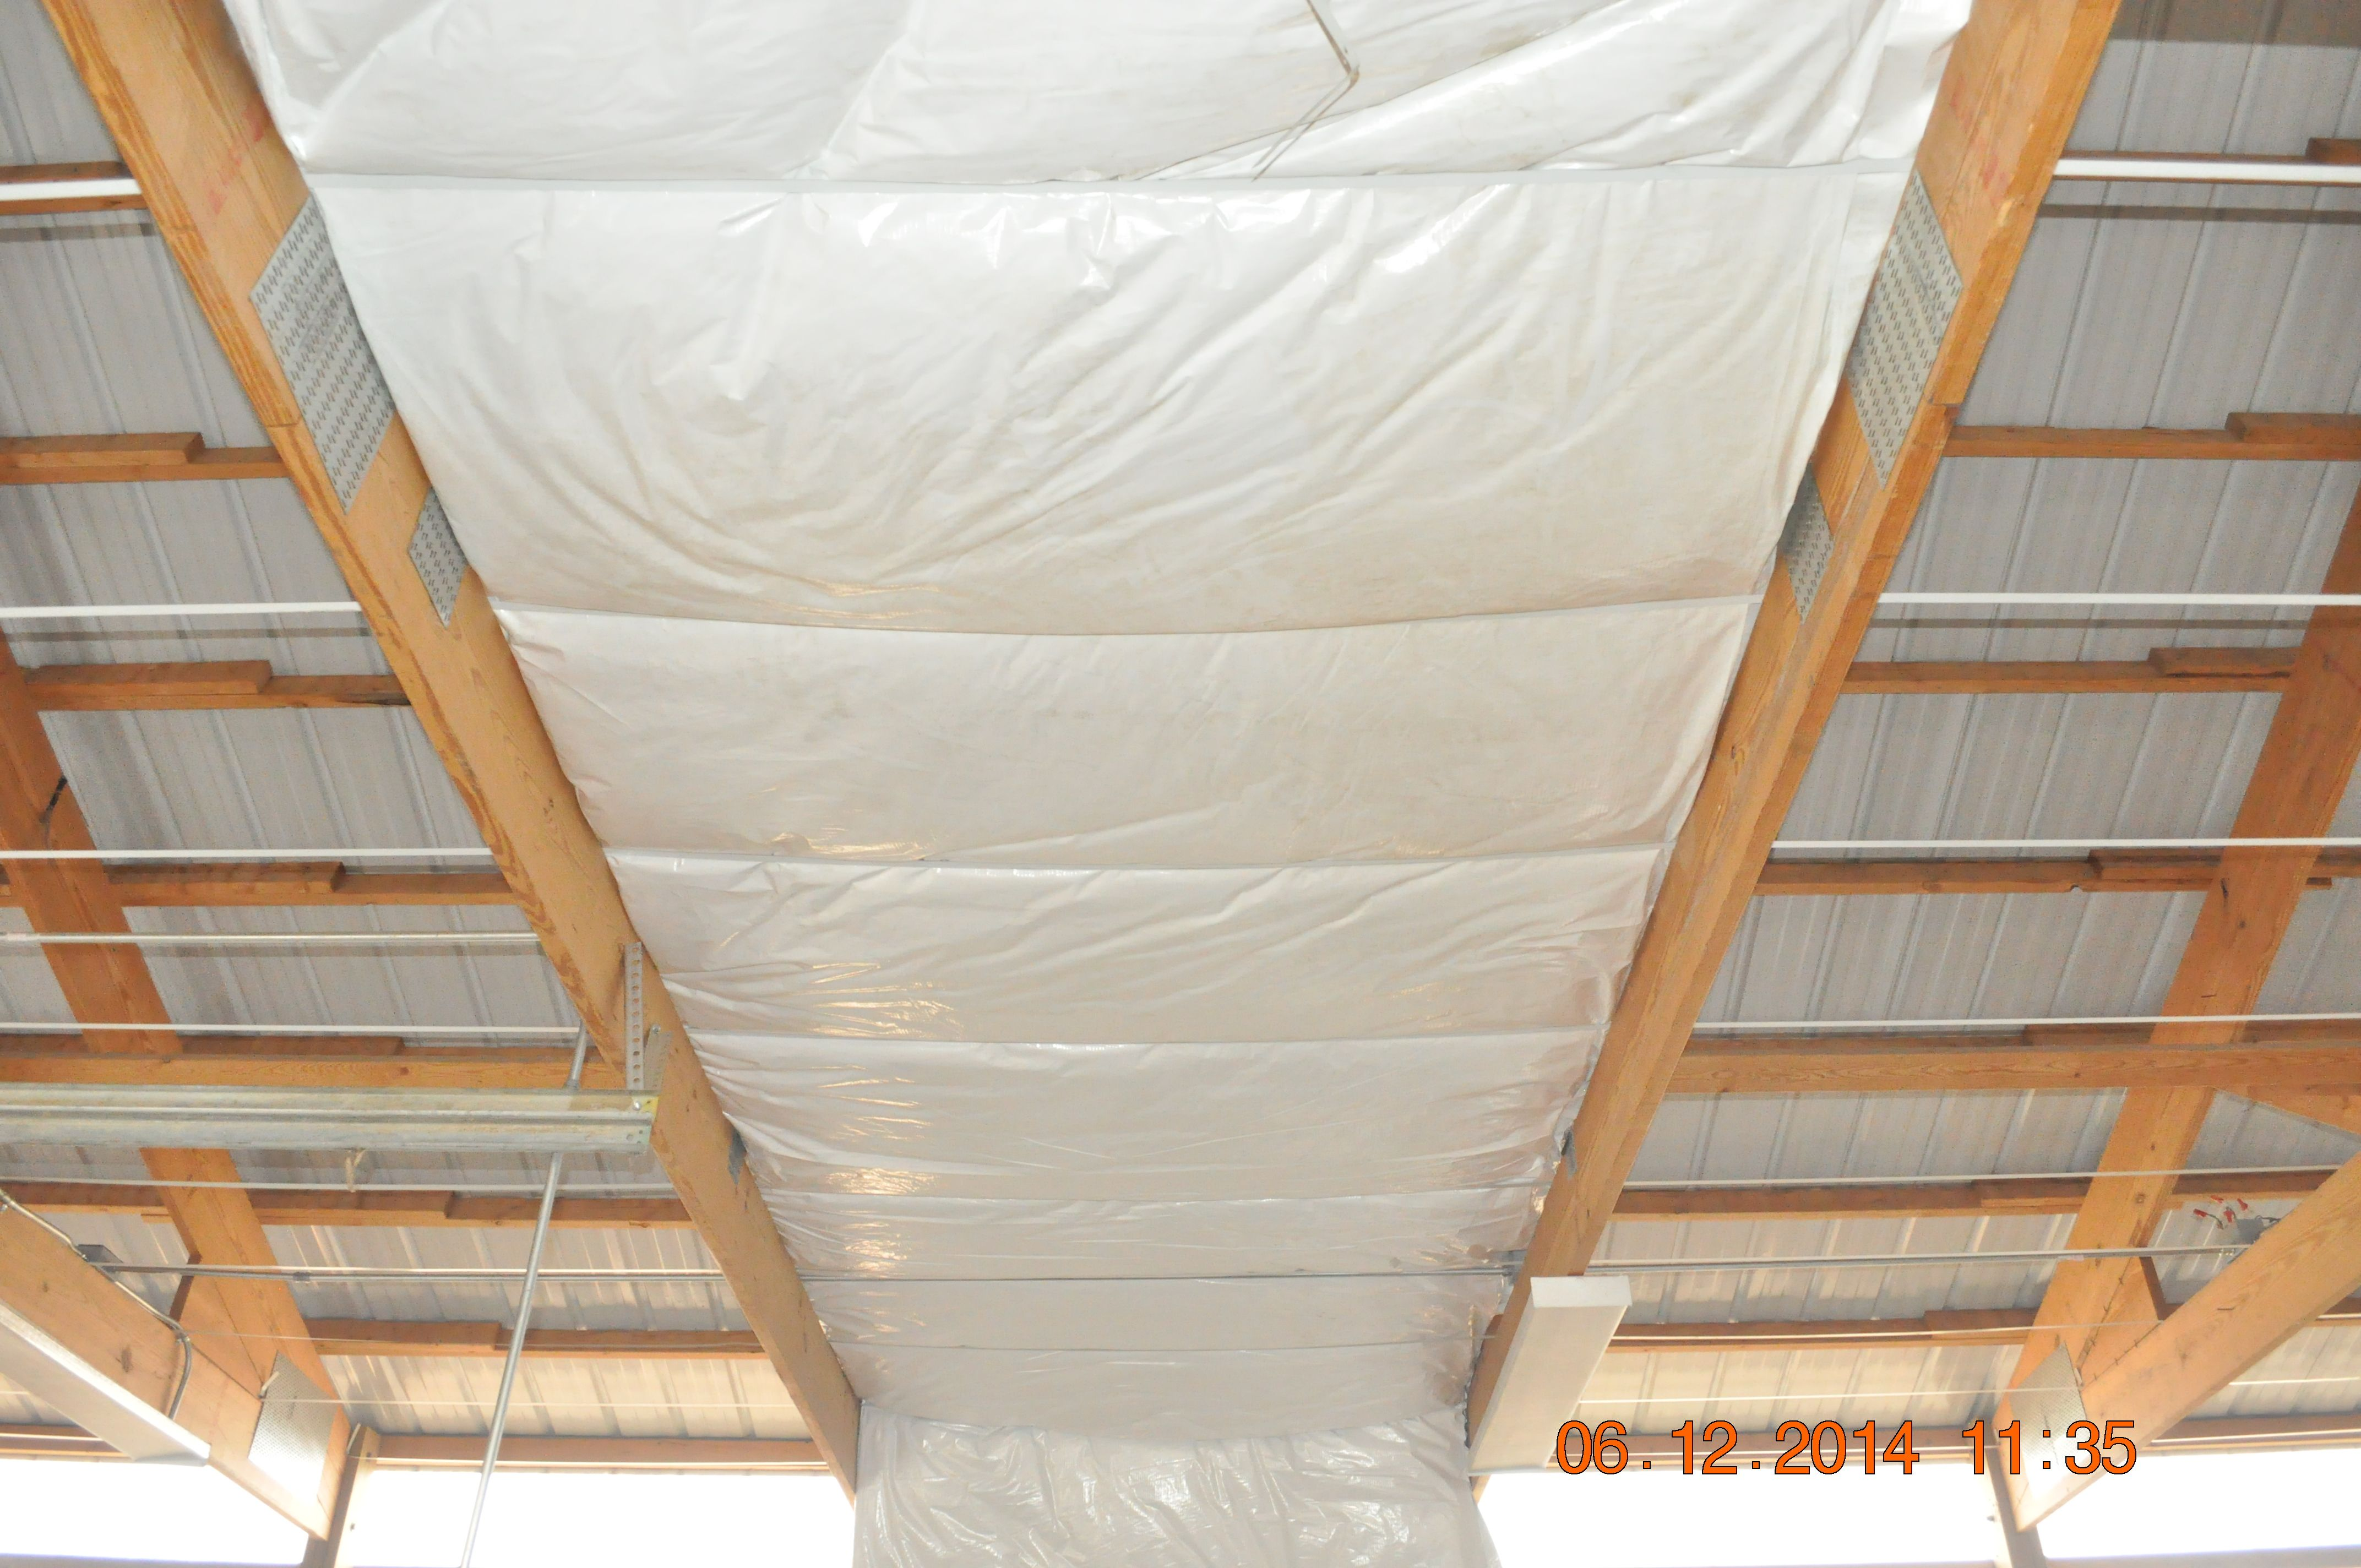 Pole Building Insulation installed at the Bottom of the